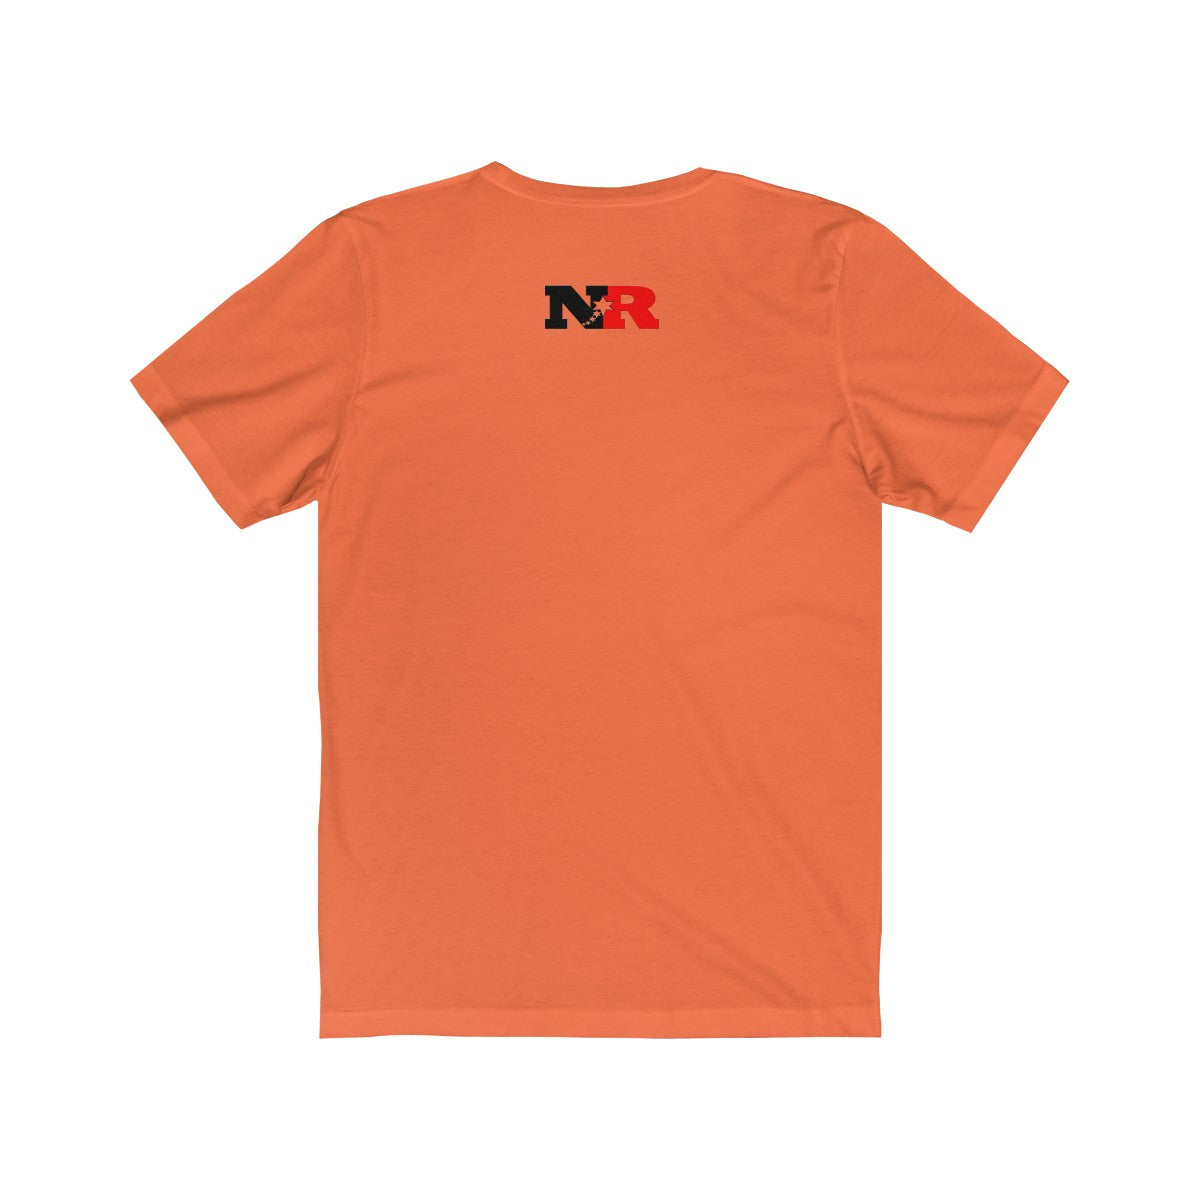 Unisex Jersey Short Sleeve Tee - (Jesus on the Cross)